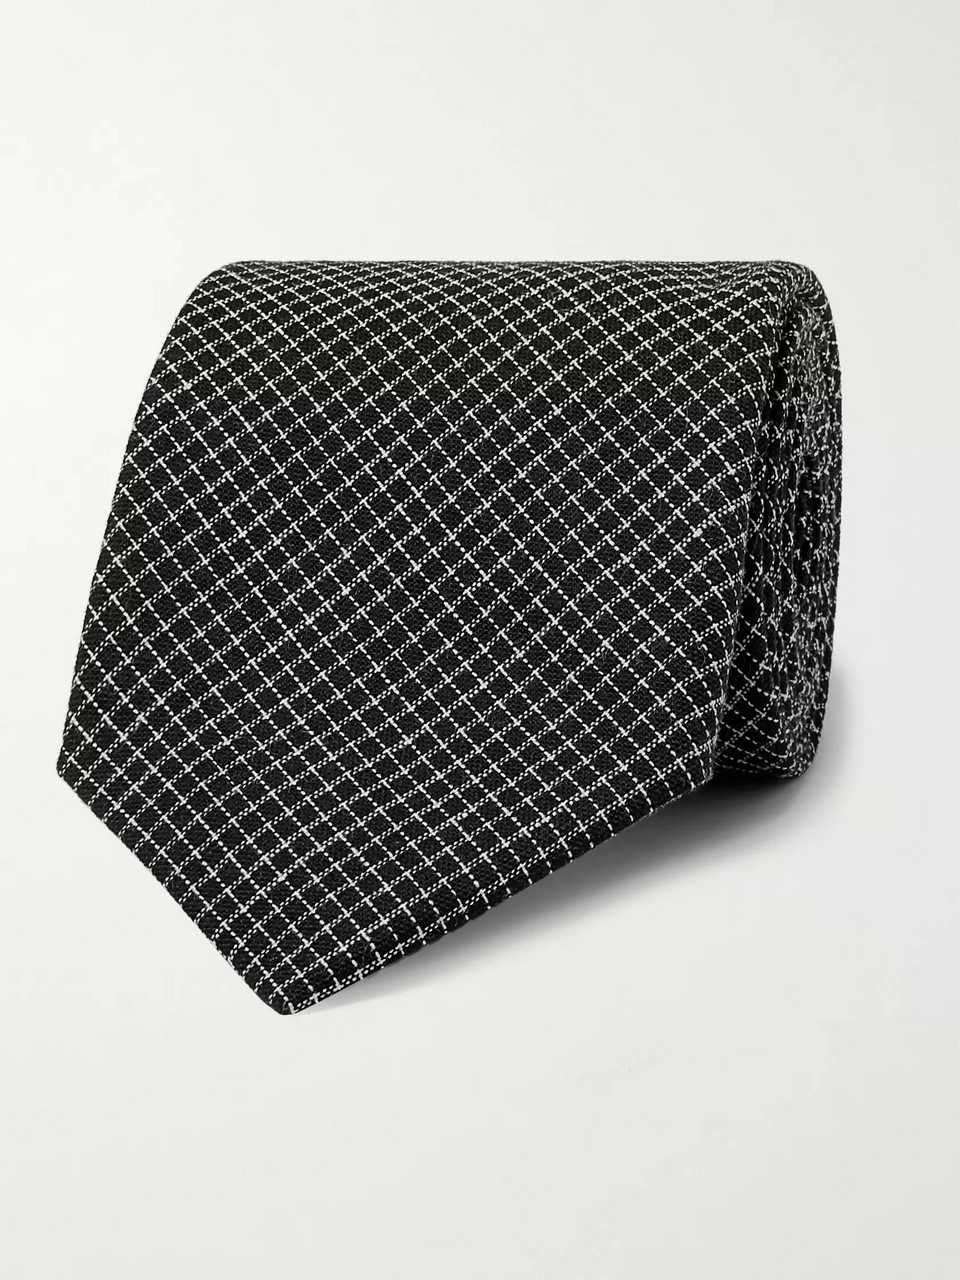 Oliver Spencer 8cm Kersley Micro-Checked Cotton and Linen-Blend Tie